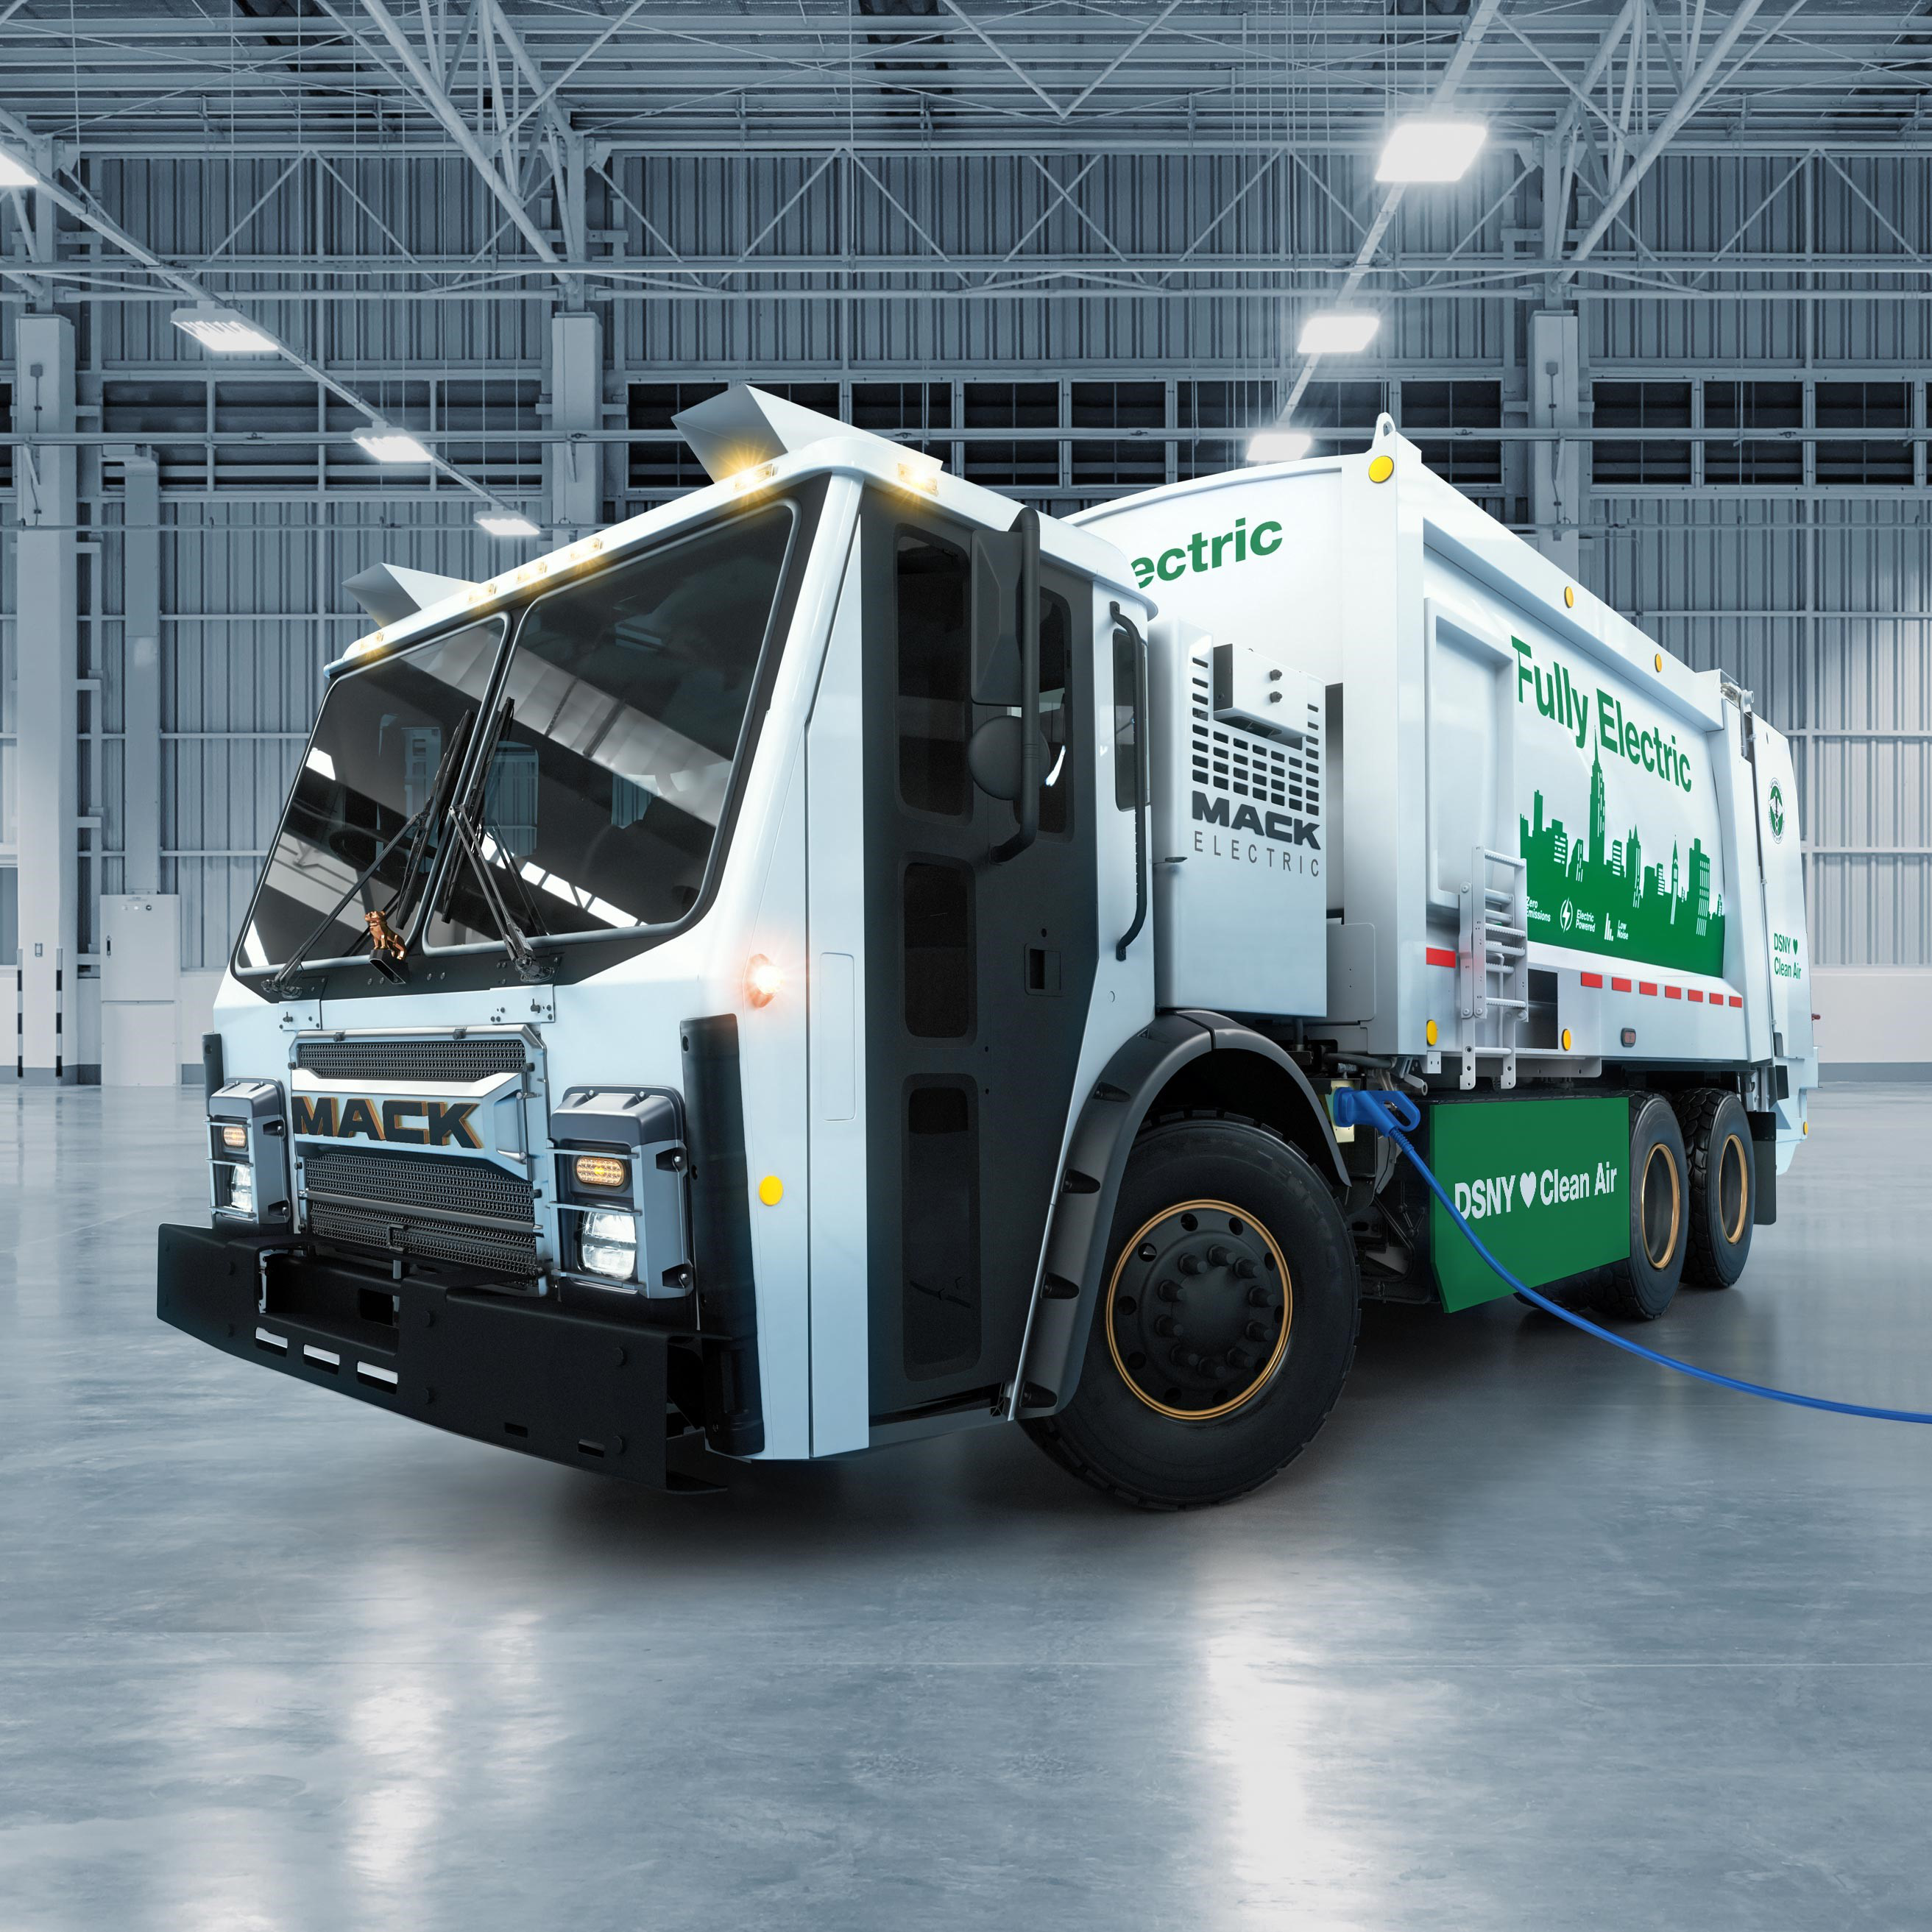 Southern California S First Electric Trash Truck Goes To Work